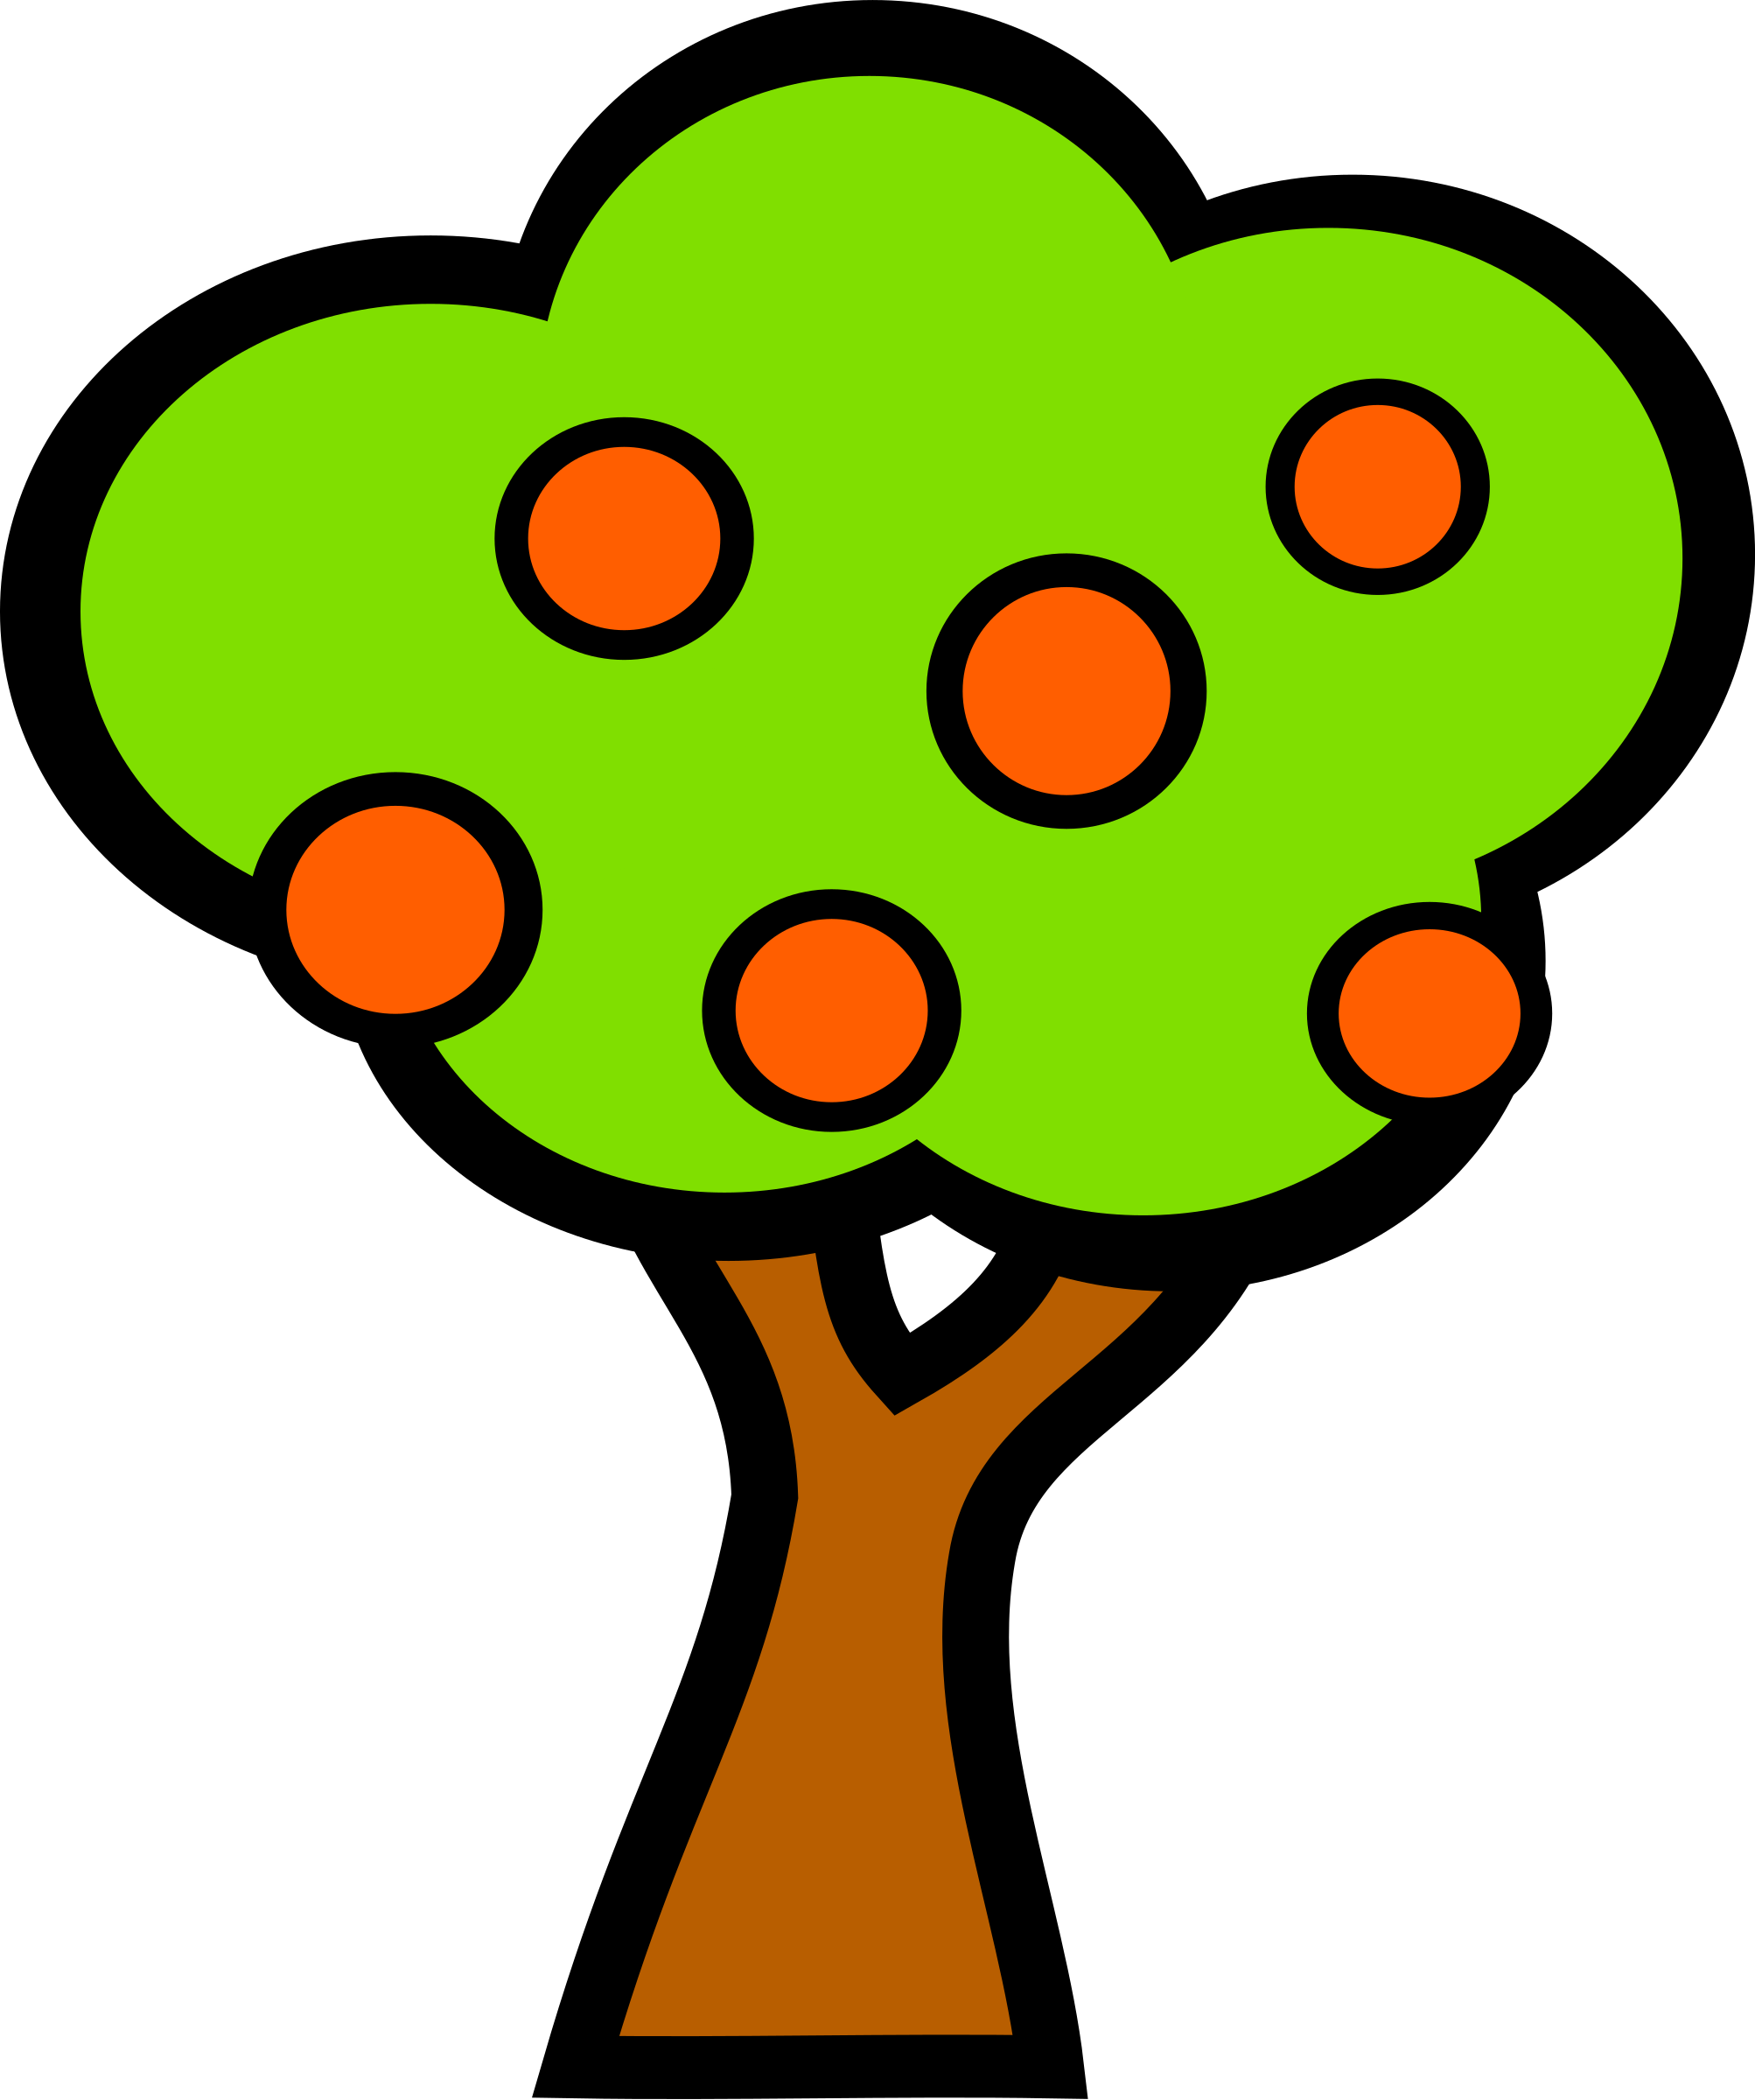 Sad tree clipart svg royalty free stock Clipart - tree with fruits svg royalty free stock